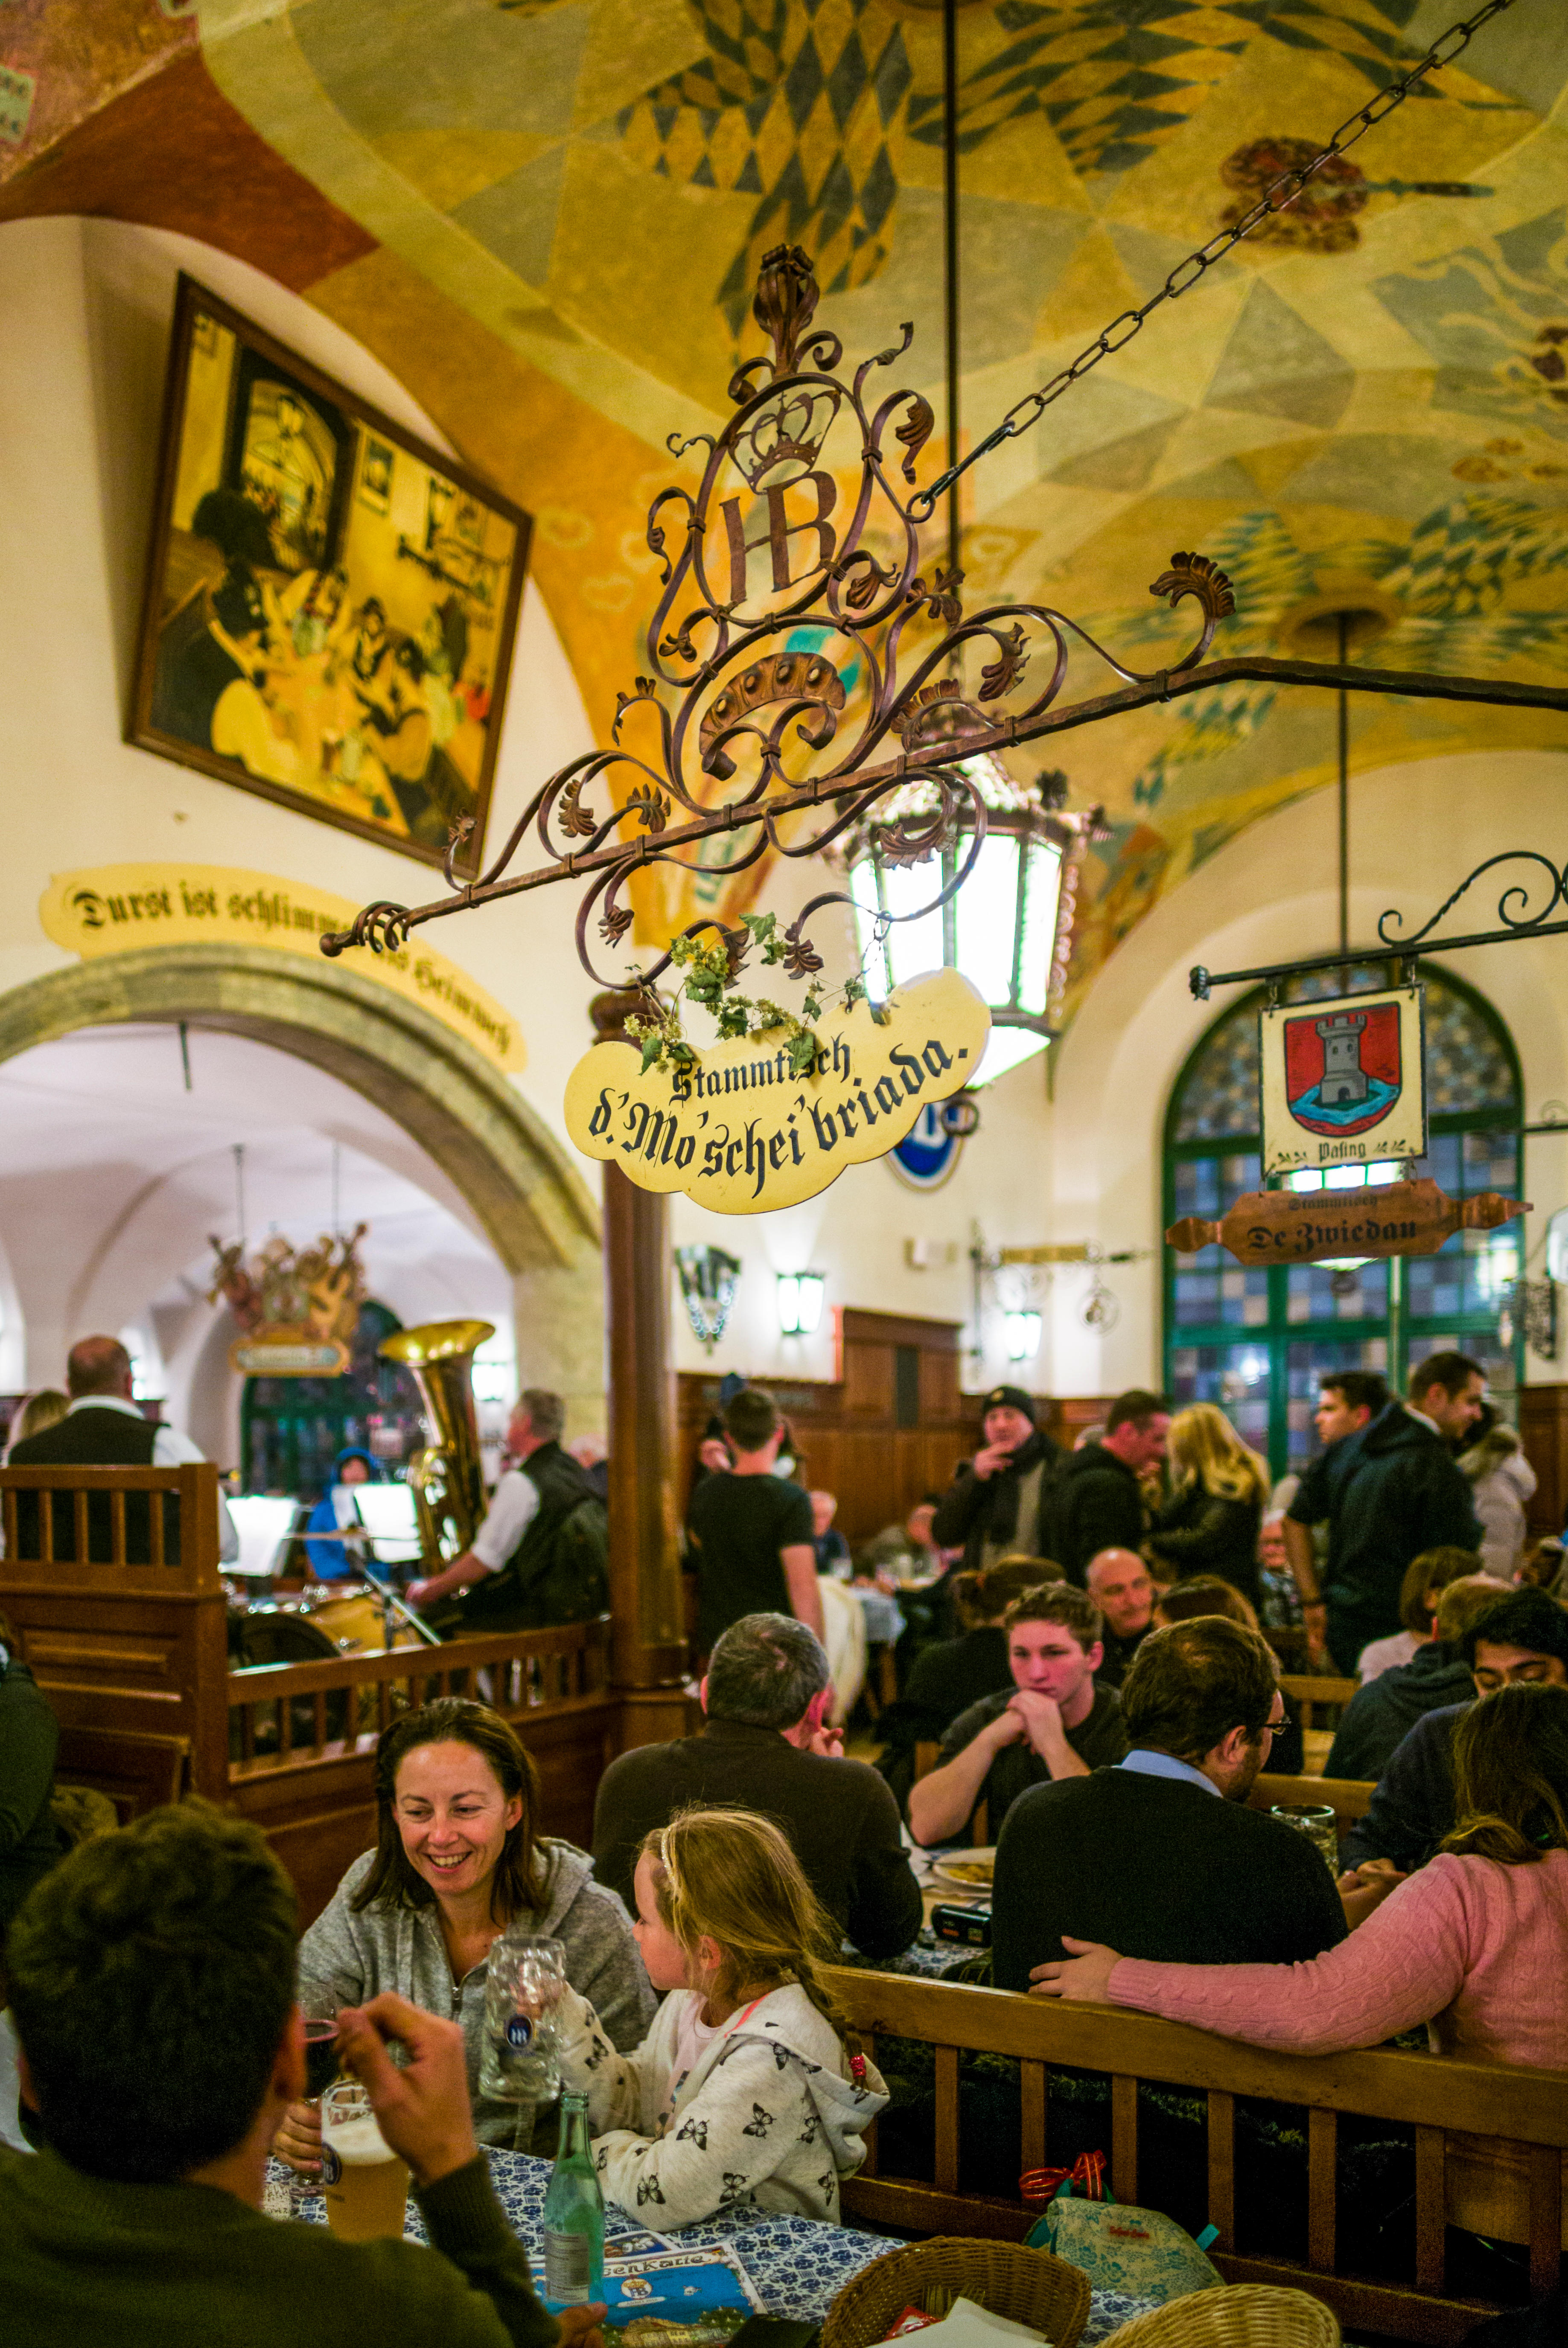 Germany, Bavaria, Munich. Hofbrauhaus, oldest beer hall in Munich